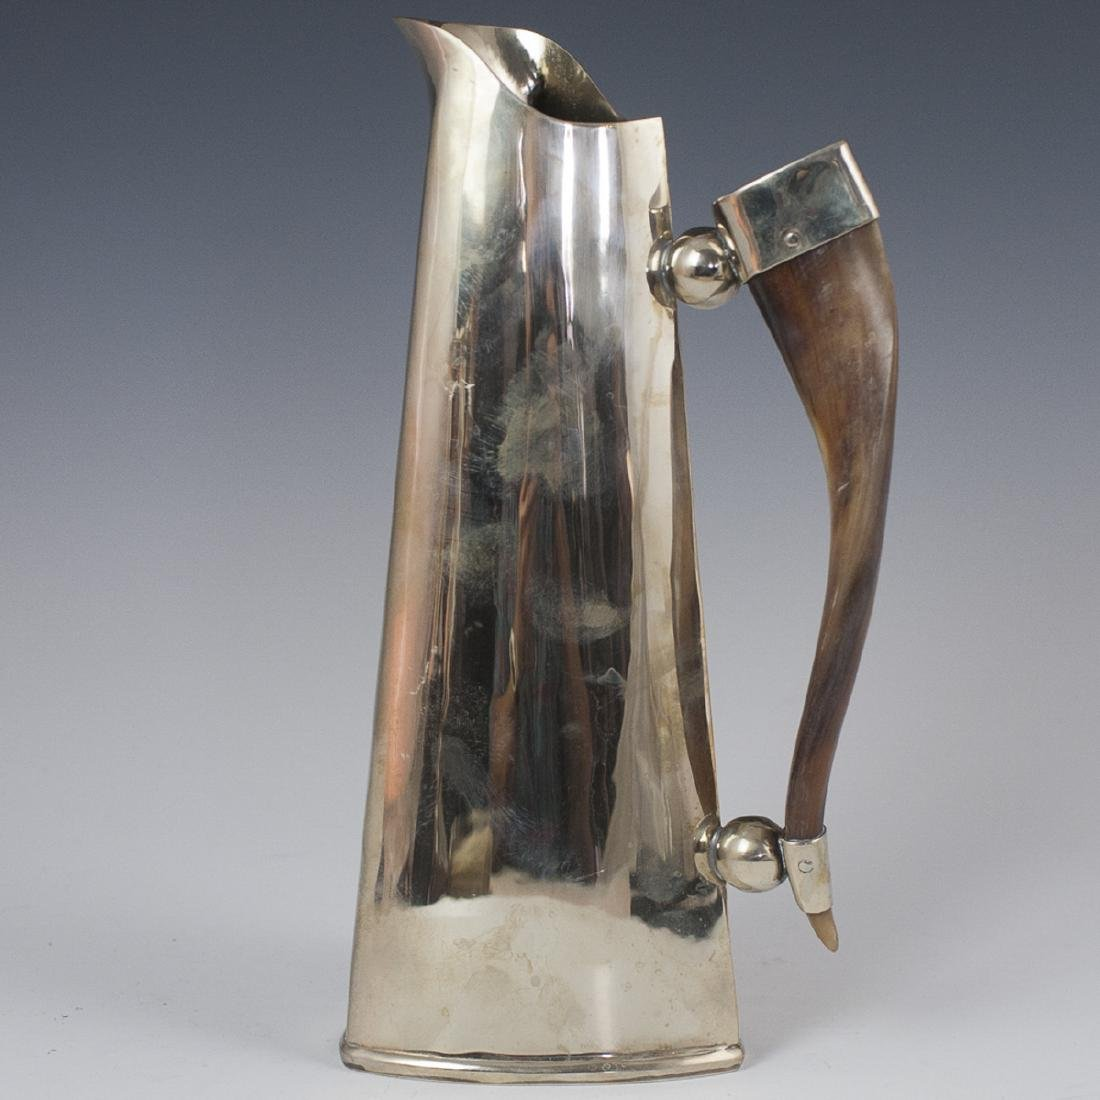 Contemporary Silver Plated Pitcher